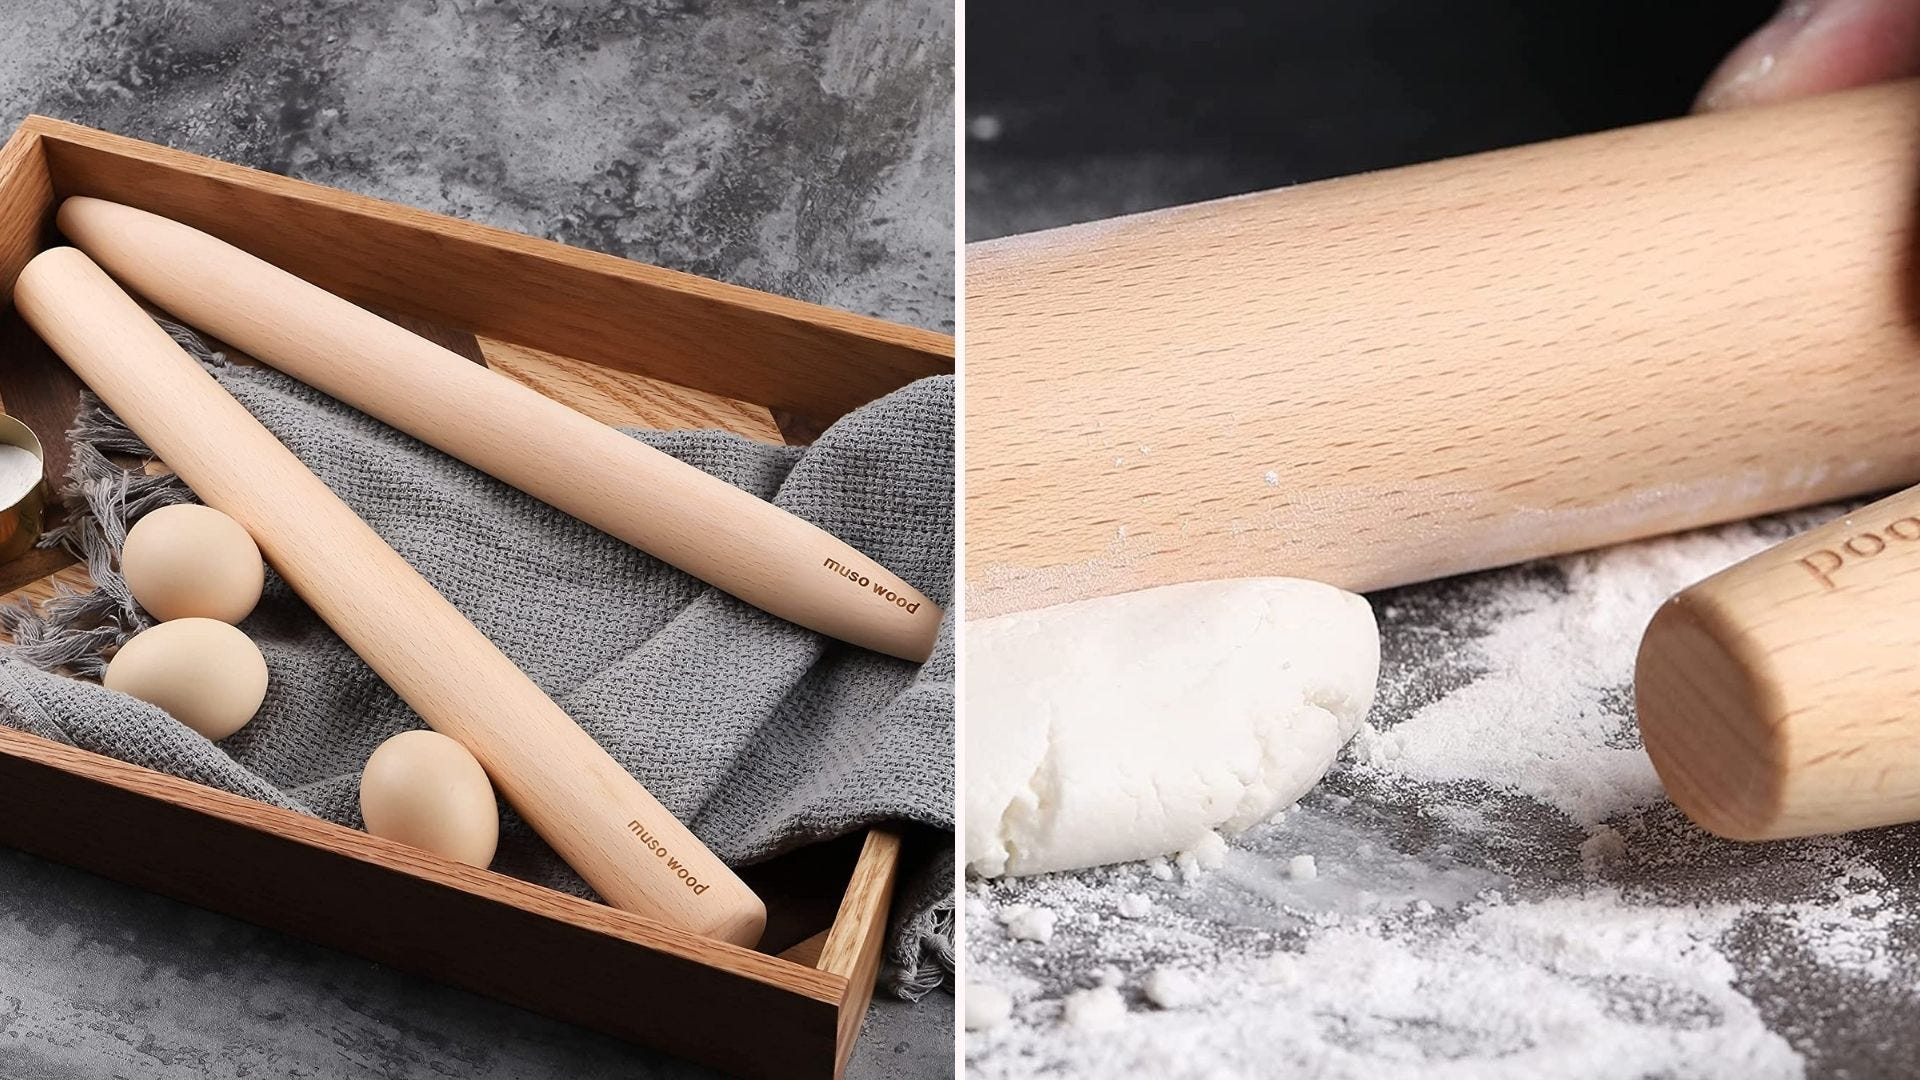 Wooden roll in a tray with towels and eggs;  a rolling pin used on dough